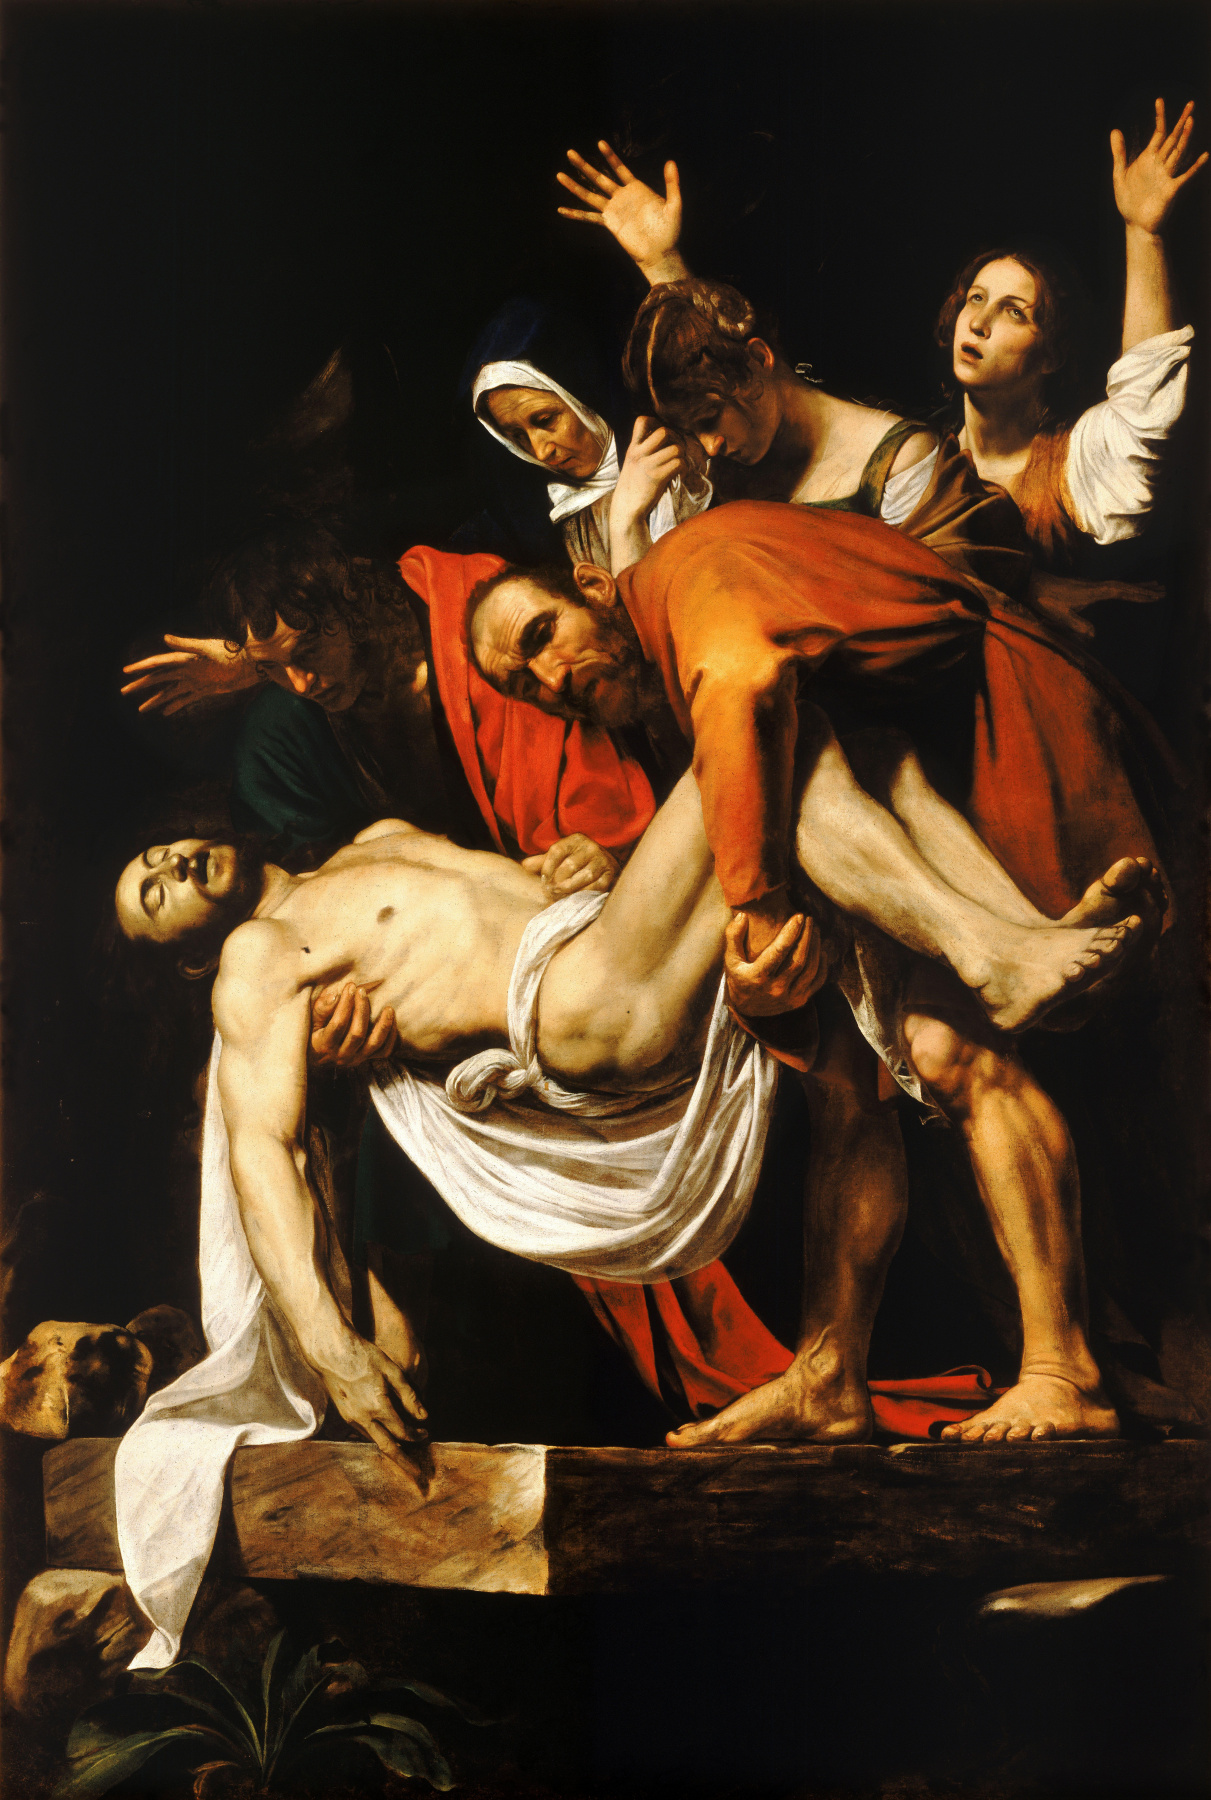 Michelangelo Merisi de Caravaggio. The burial of Christ (the entombment)